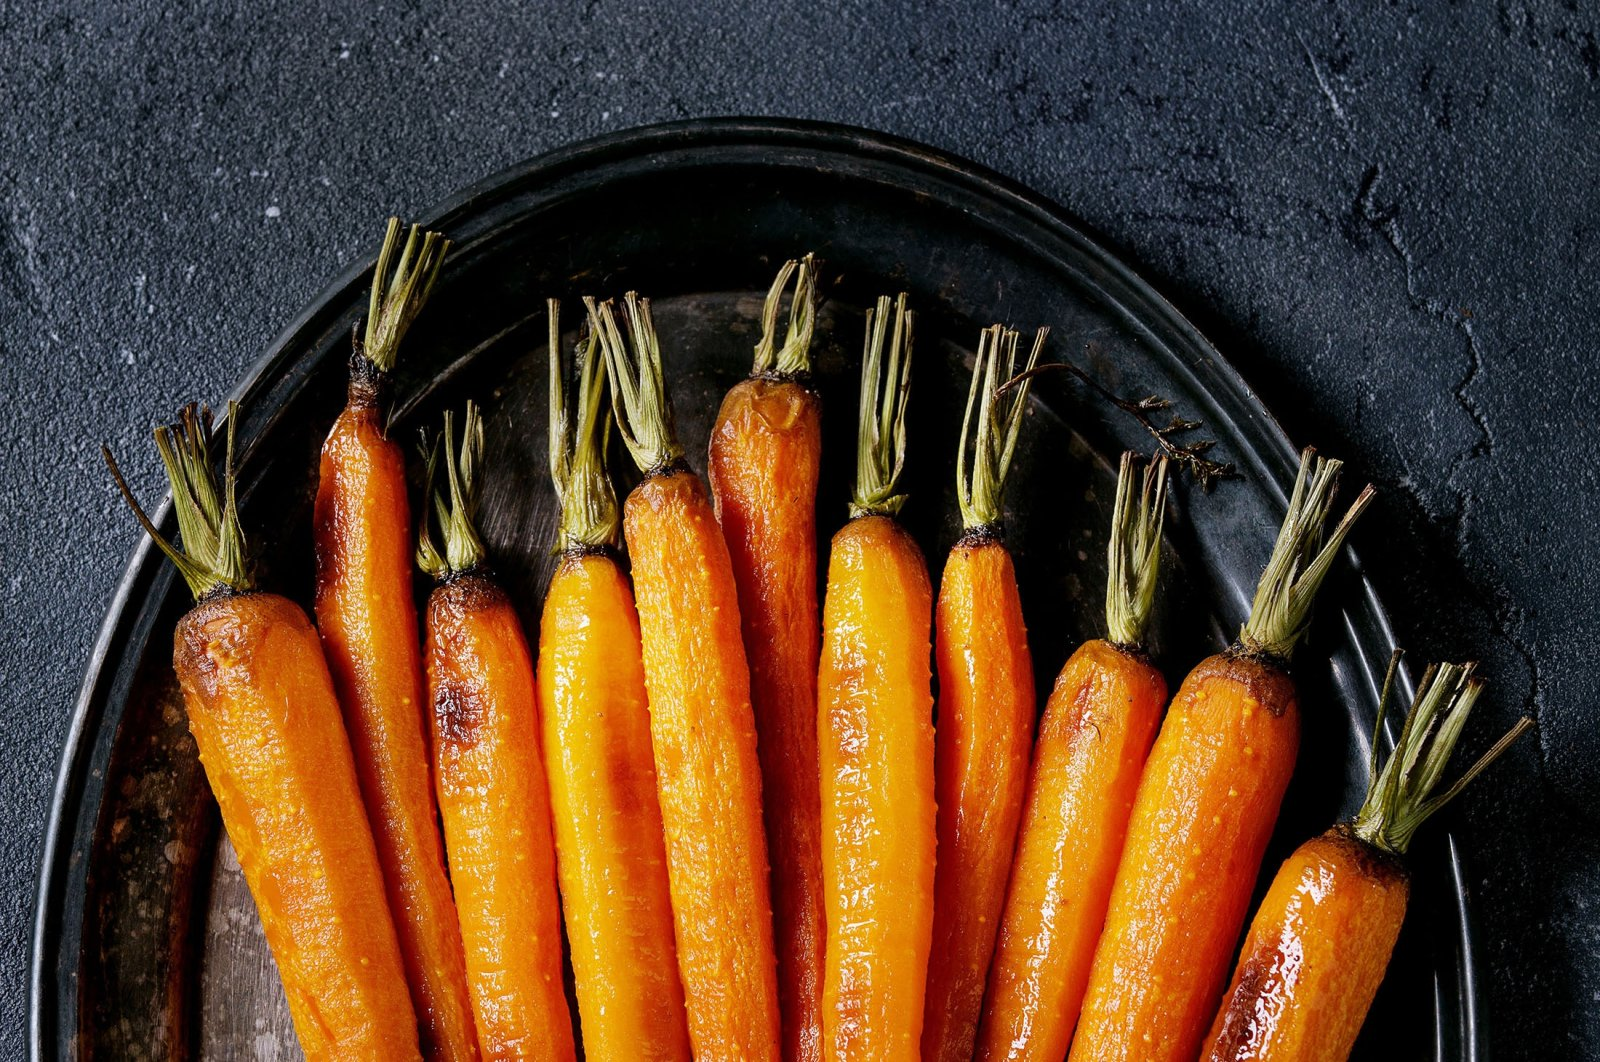 If you happen to have baby or young carrots, roast them whole and don't bother chopping them up. (via Getty Images)